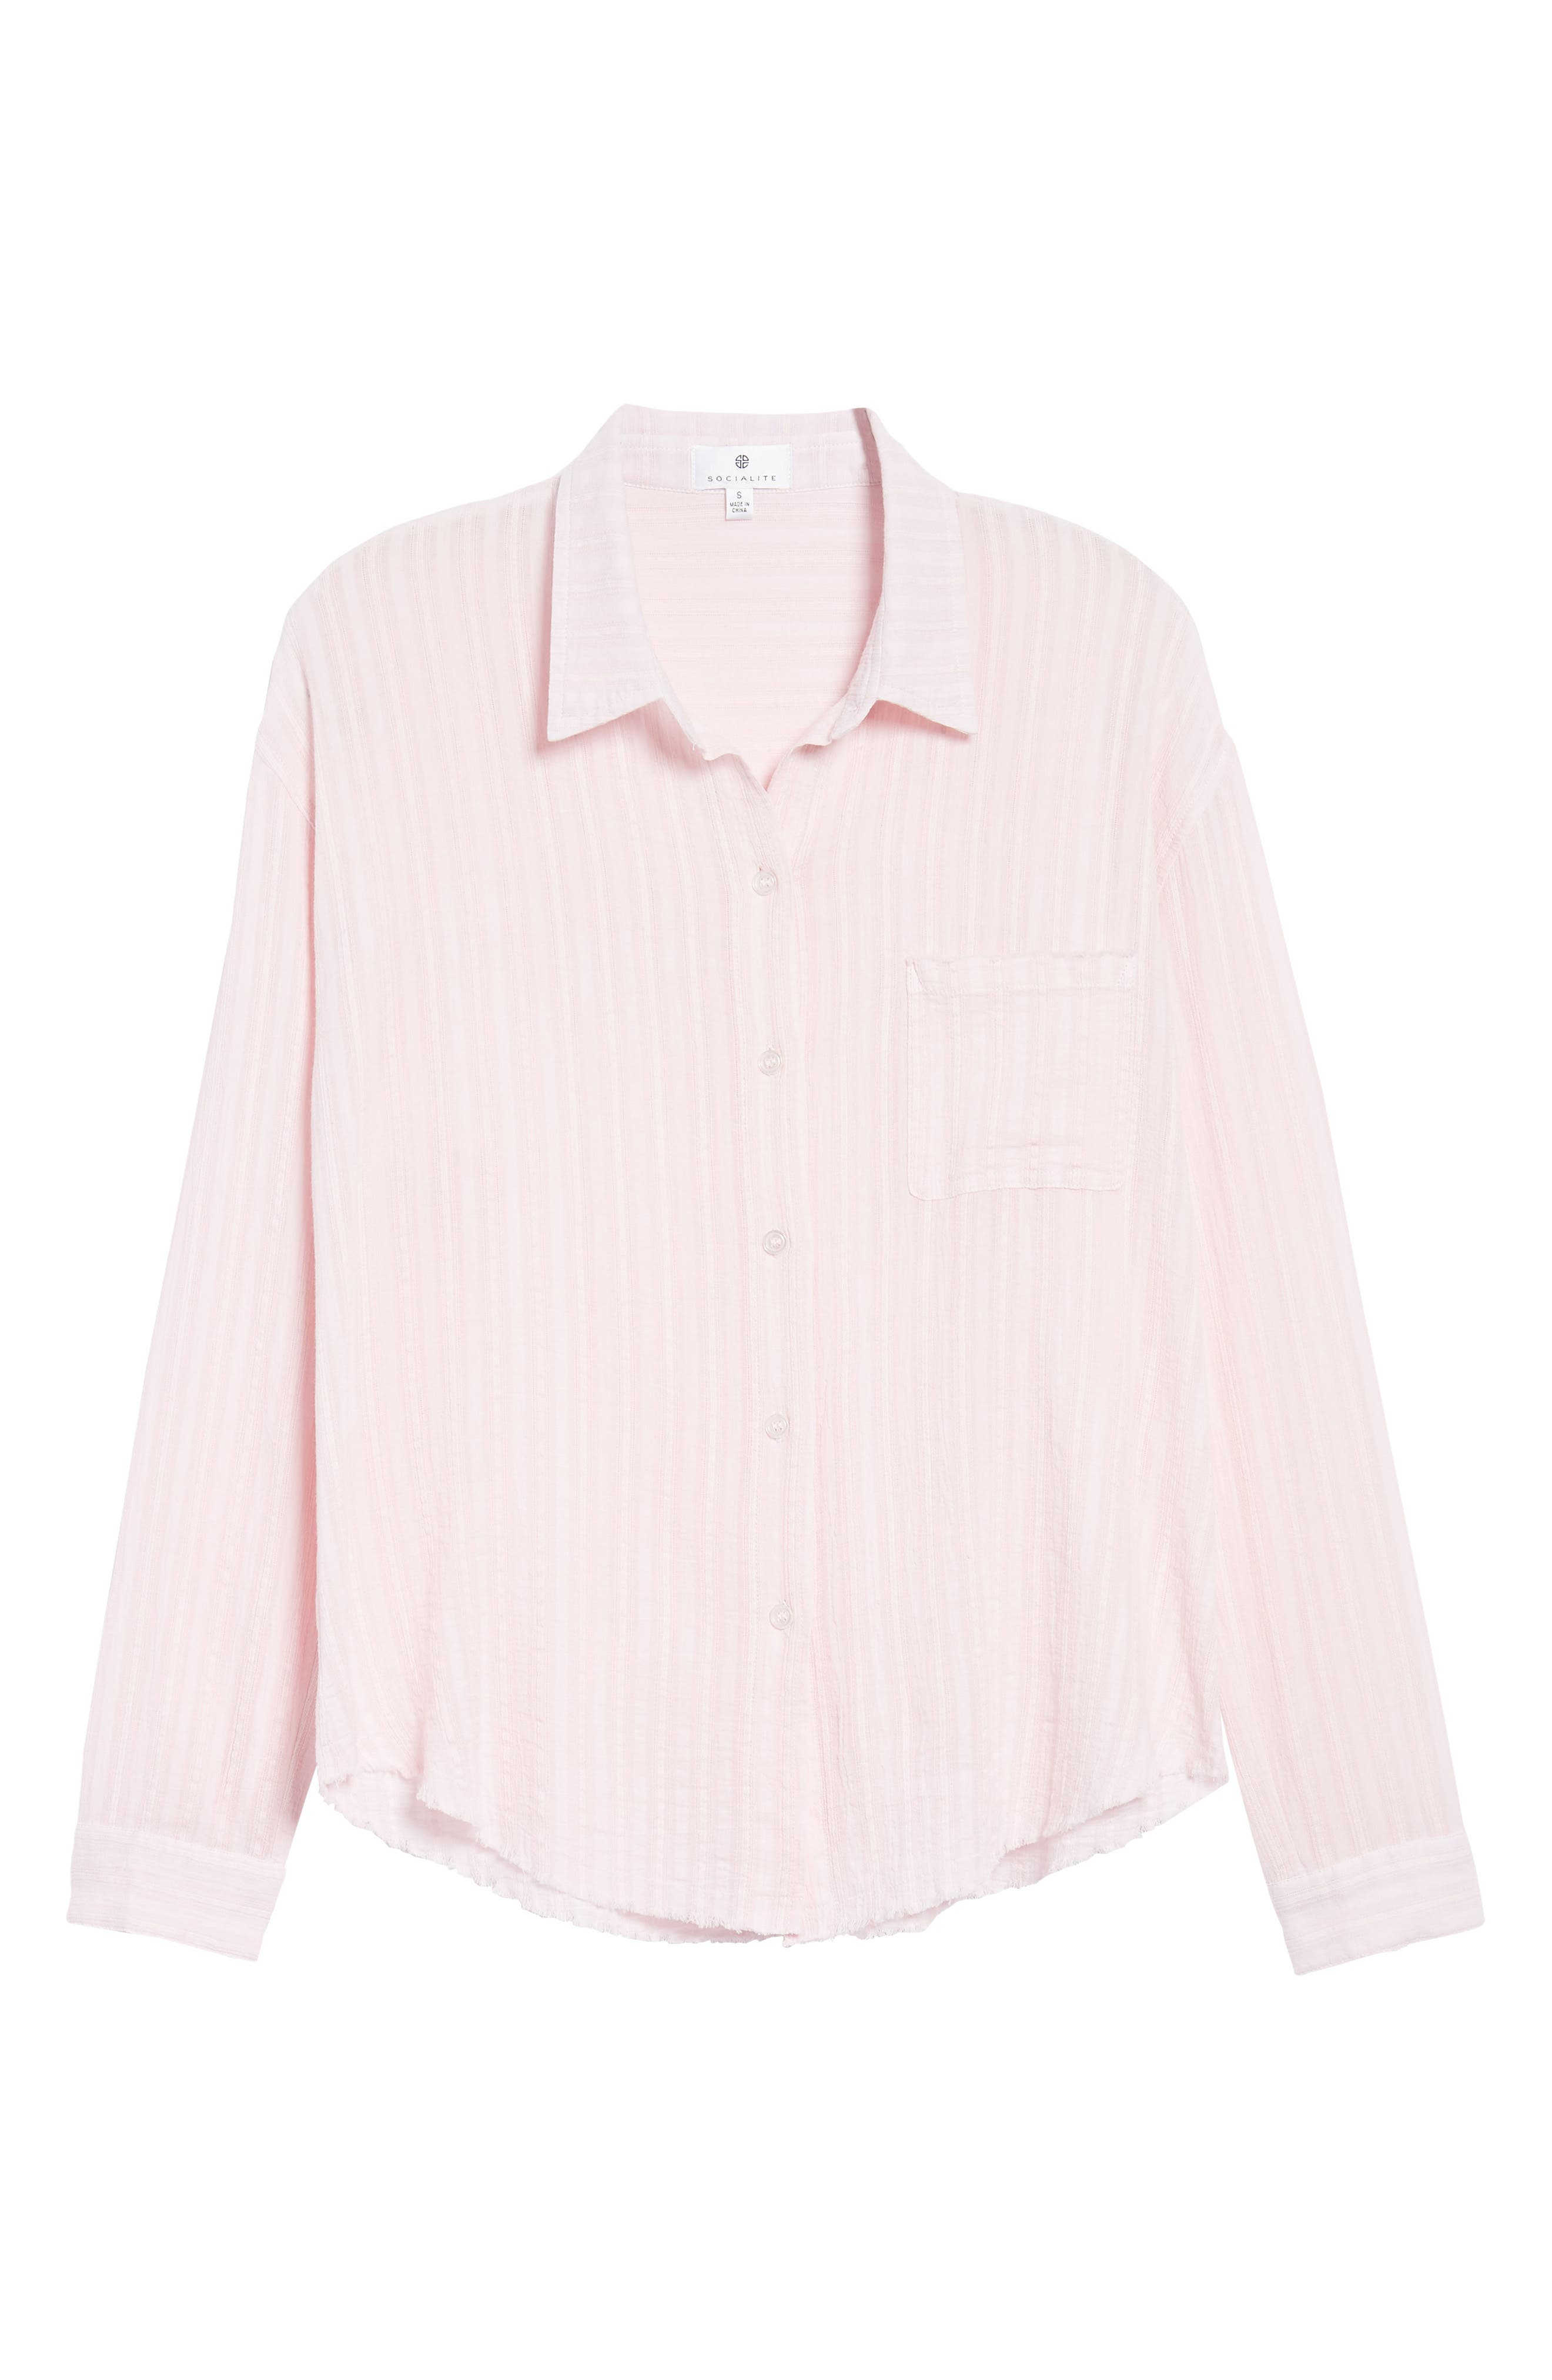 Raw Hem Shirt,                             Alternate thumbnail 6, color,                             Light Pink